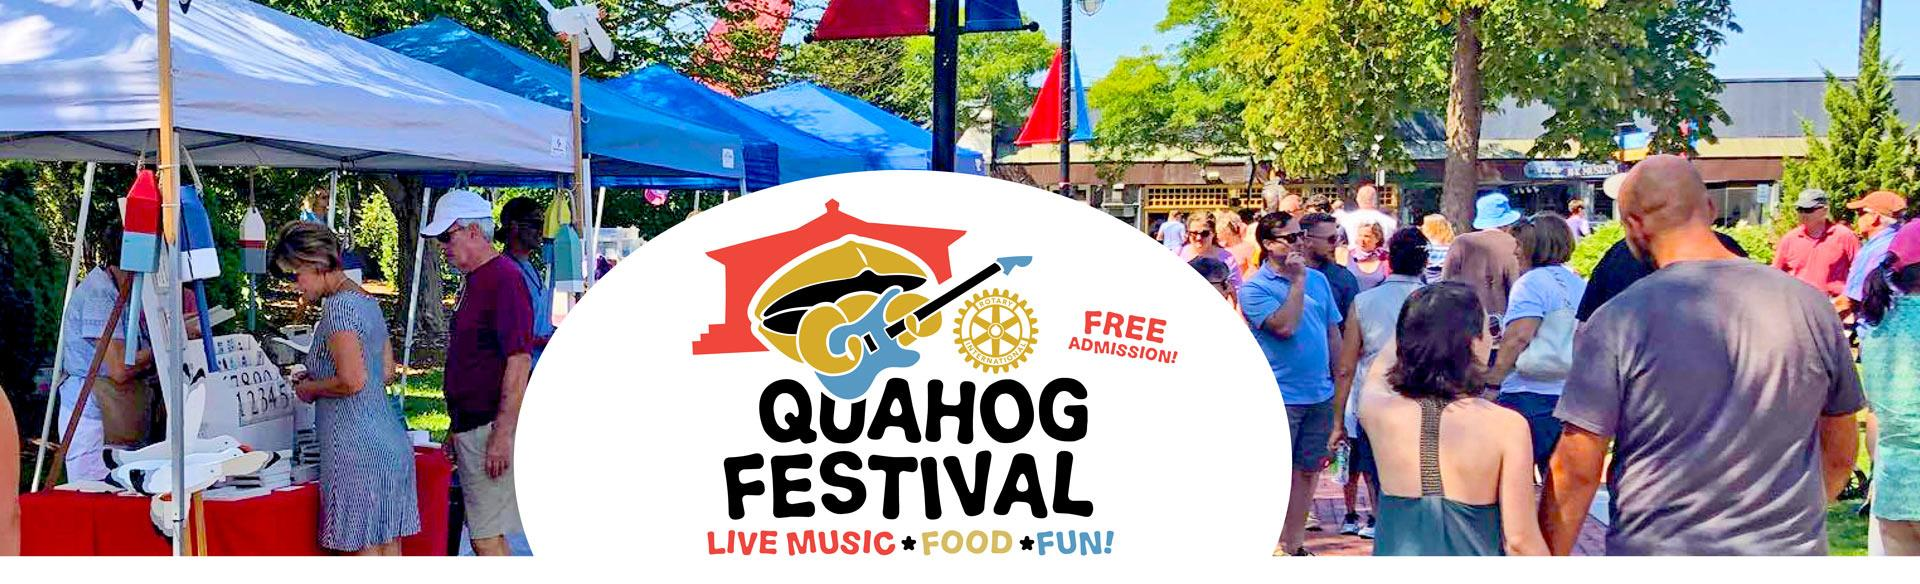 Qualhog Festival on Cape Cod